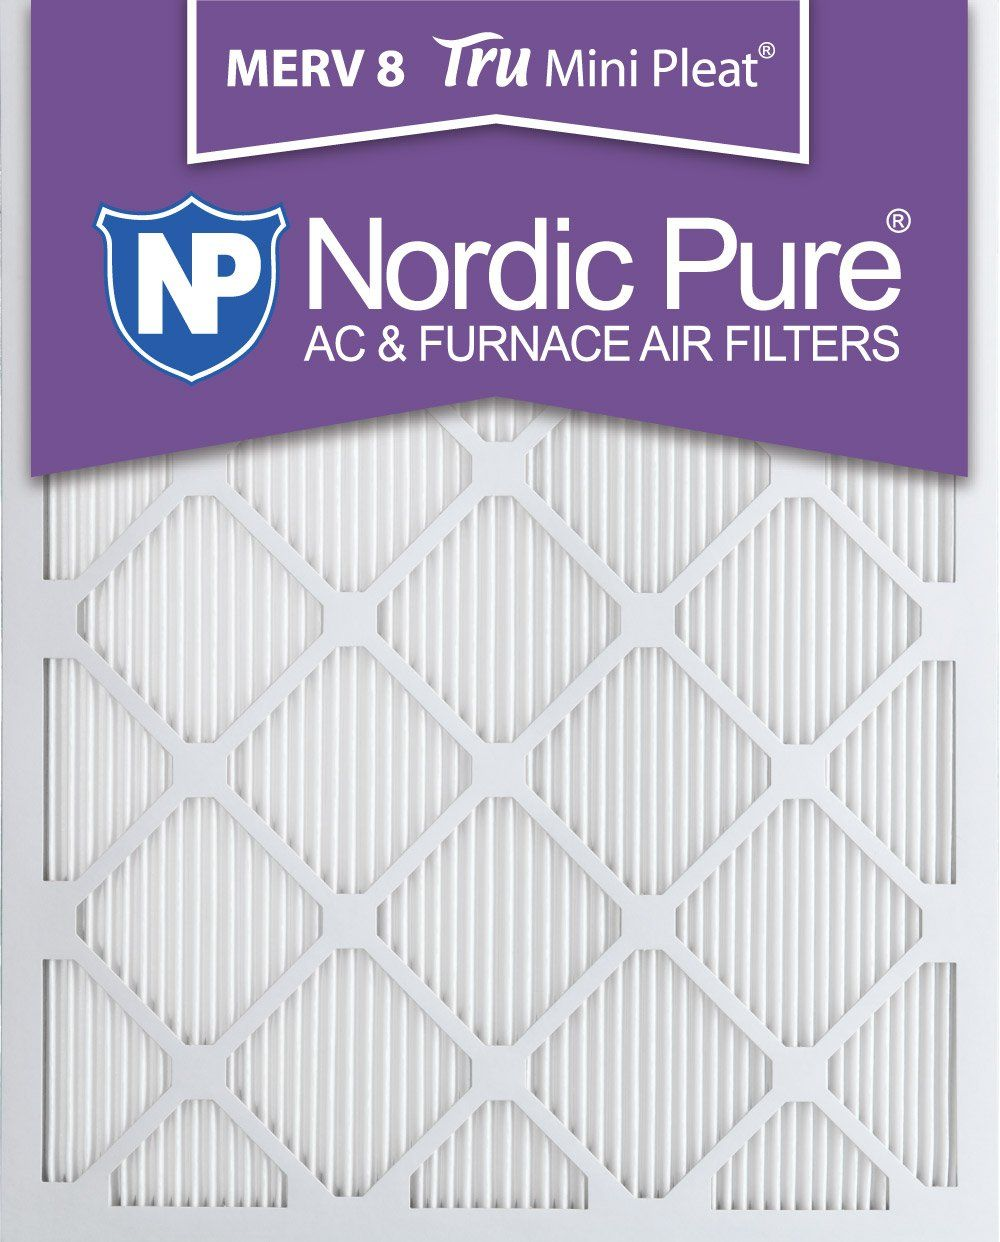 Nordic Pure 16x25x1 MERV 8 Tru Mini Pleat AC Furnace Air